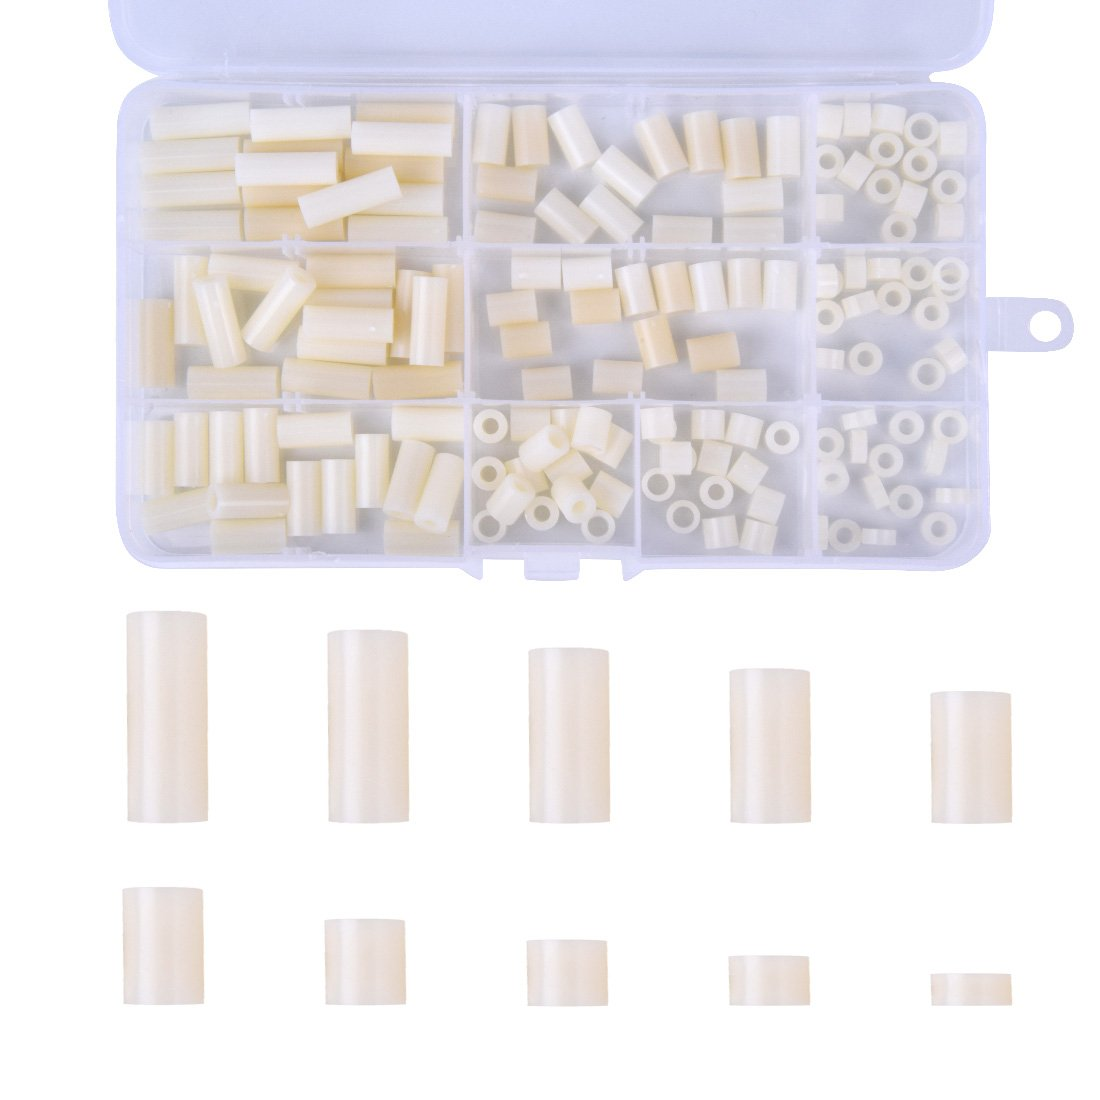 Hotusi 150Pcs Nylon Plastic Round Spacer Assortment Kit, for M3 and M4 Screws Come with Plastic Box